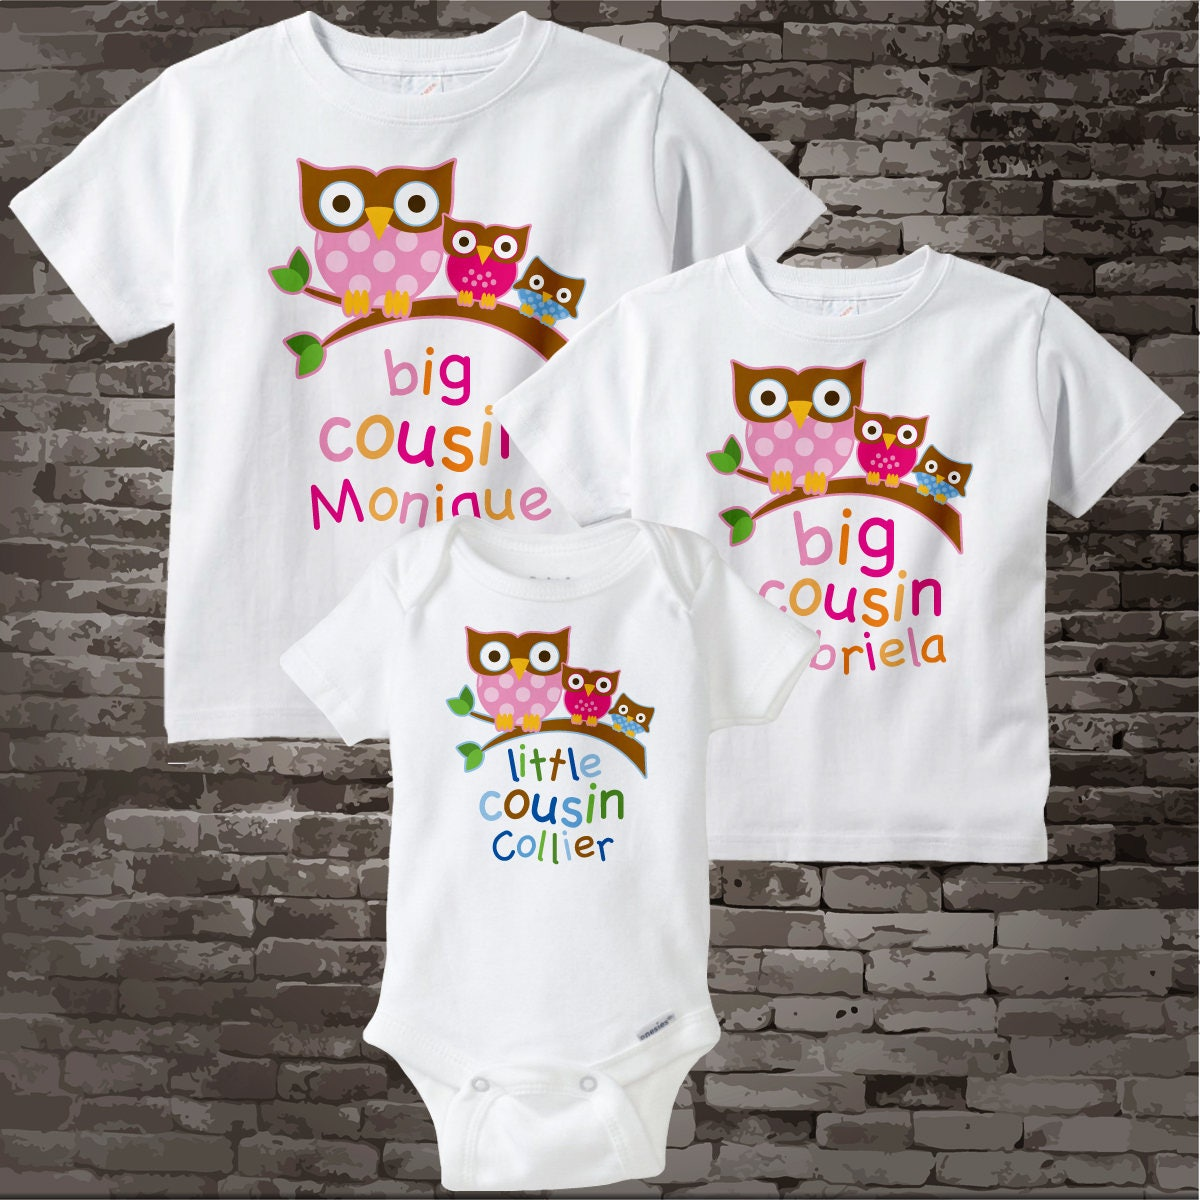 62f707bb719fc ... Boy Owl Shirt or Onesie 09202012z. gallery photo ...